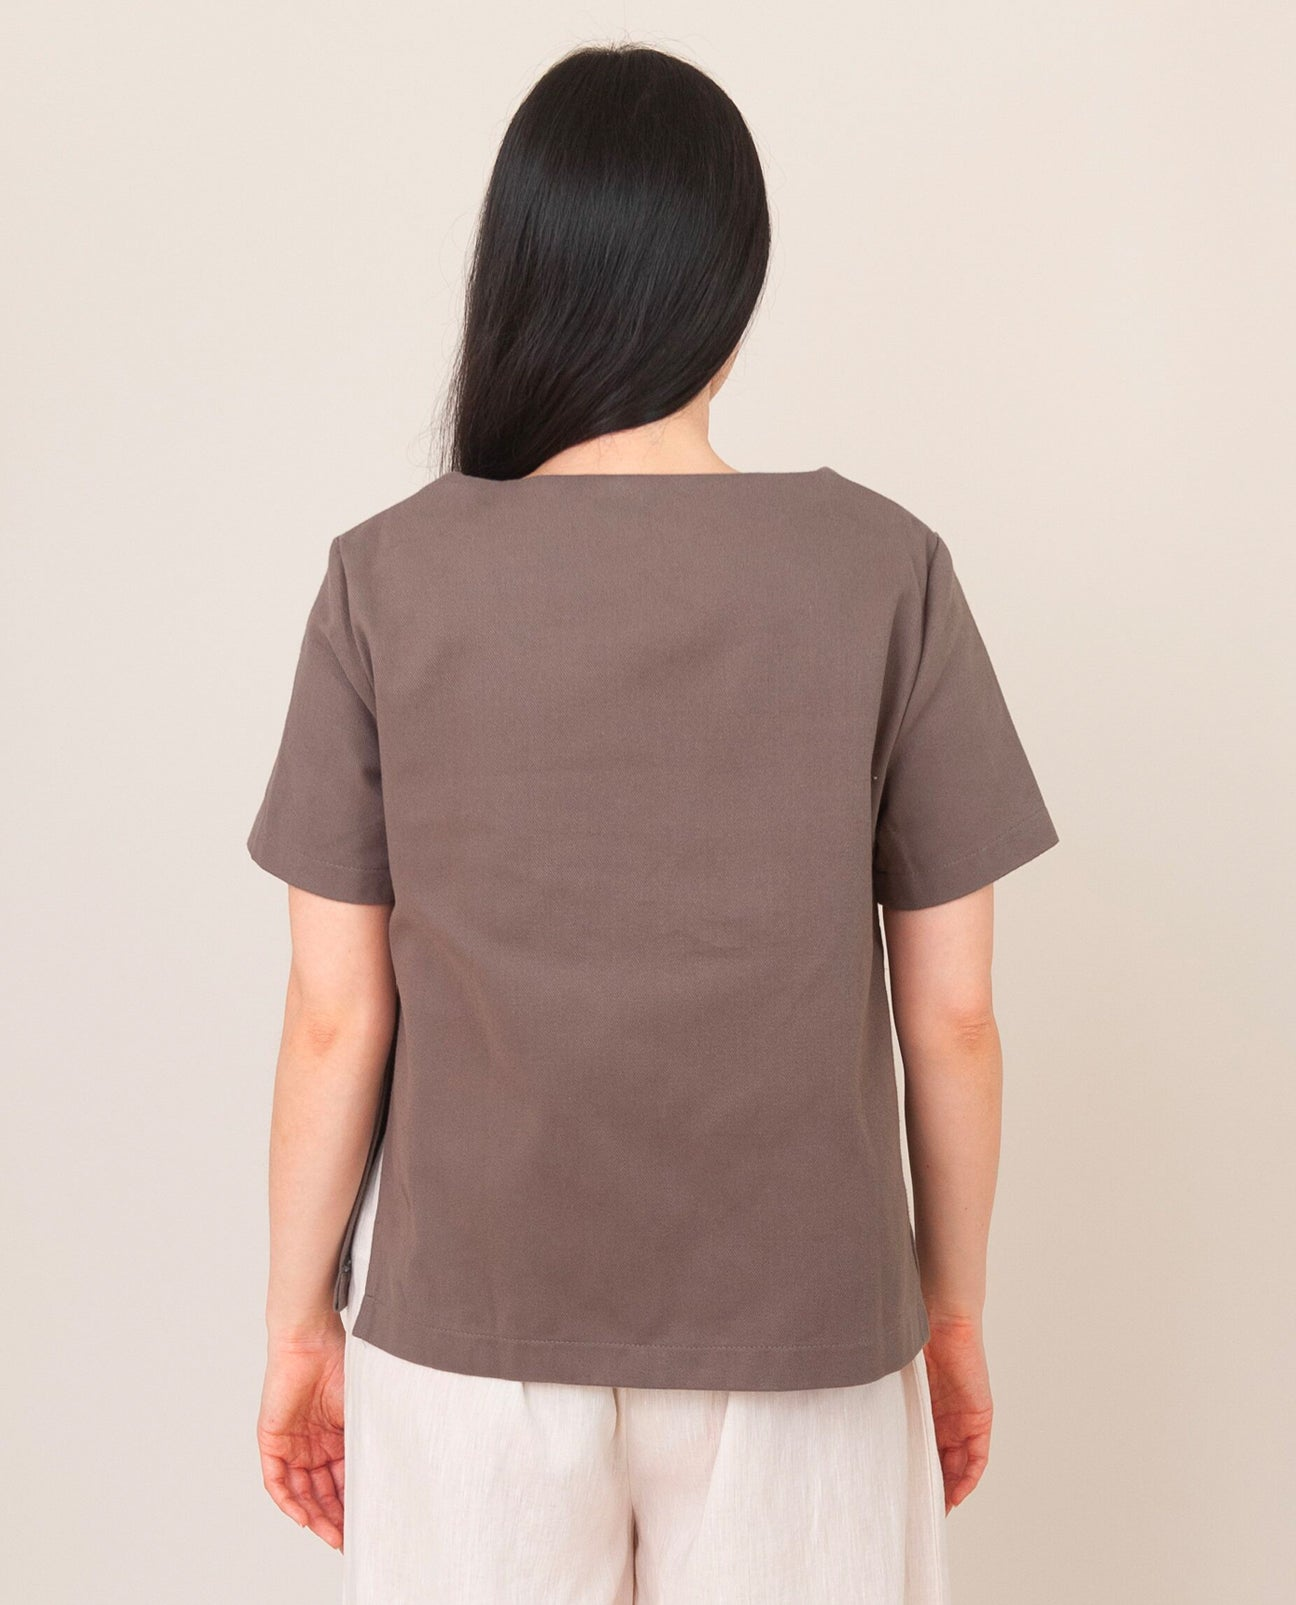 WINI-DEE  Cotton Top In Khaki